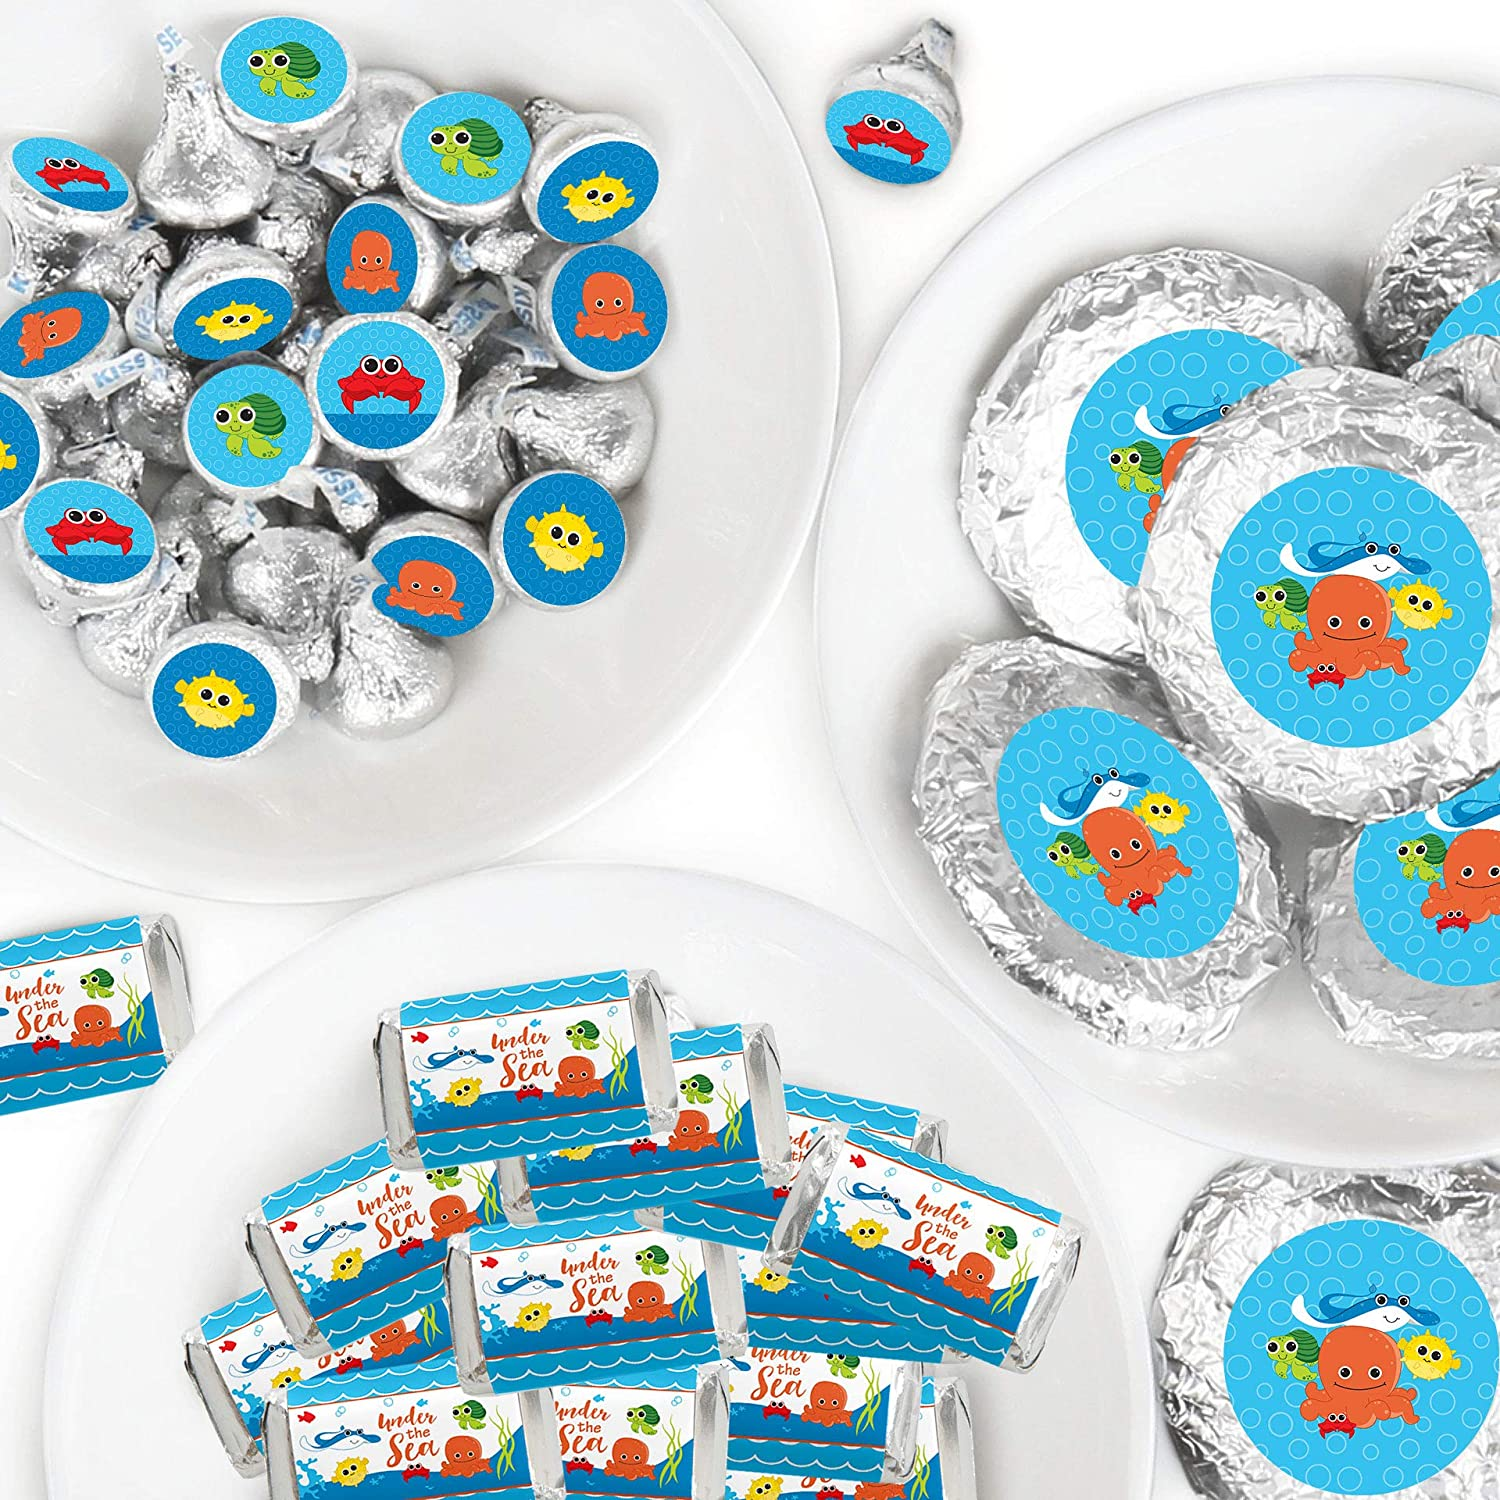 Big Dot of Happiness Under the Sea Critters - Mini Candy Bar Wrappers, Round Candy Stickers and Circle Stickers - Baby Shower or Birthday Party Candy Favor Sticker Kit - 304 Pieces